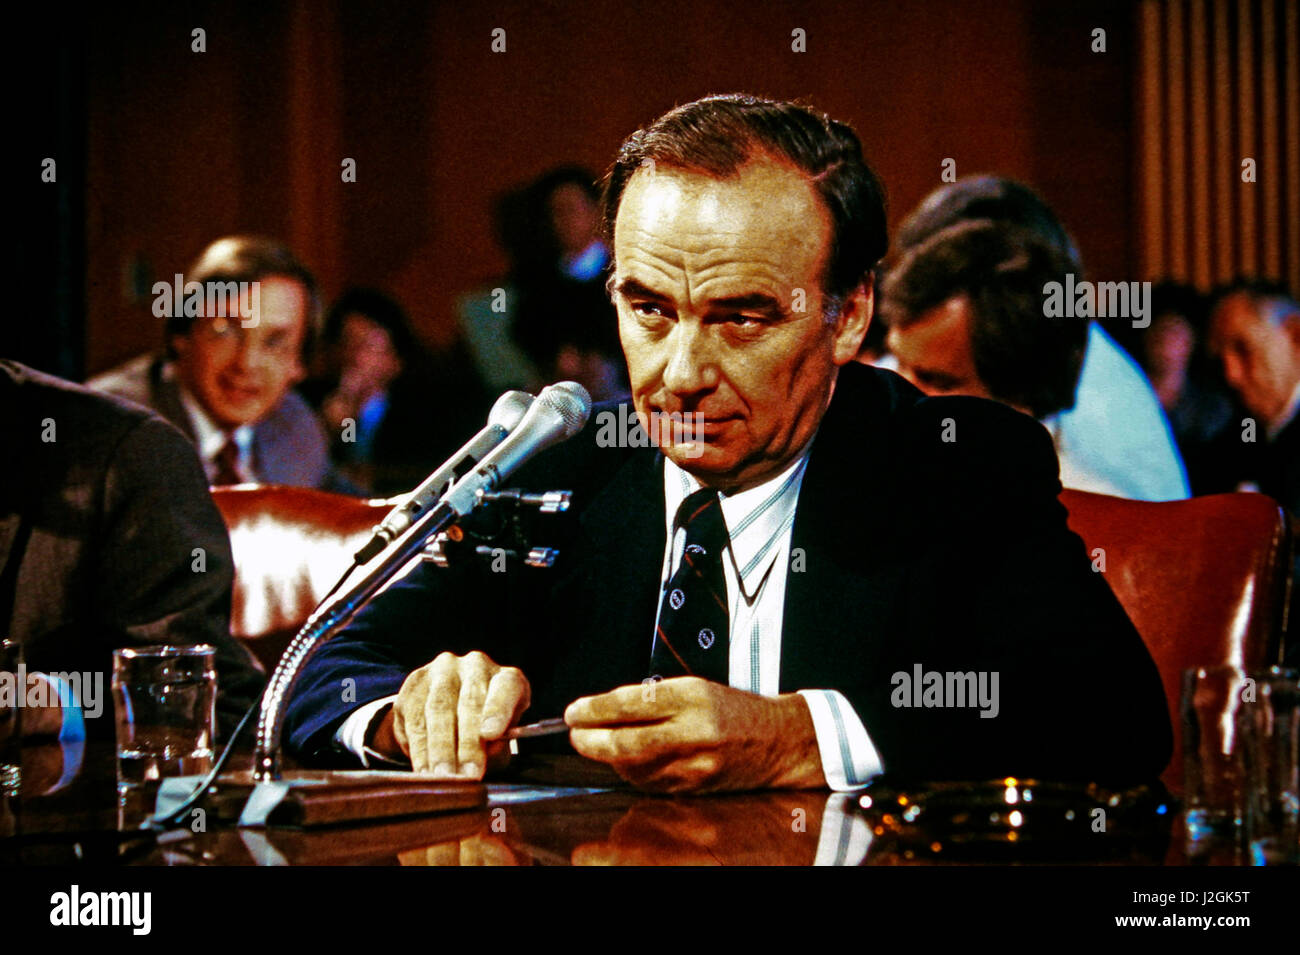 Rupert Murdoch testifying before the Senate Banking Committee in May 1980. (Large format sizes available) - Stock Image